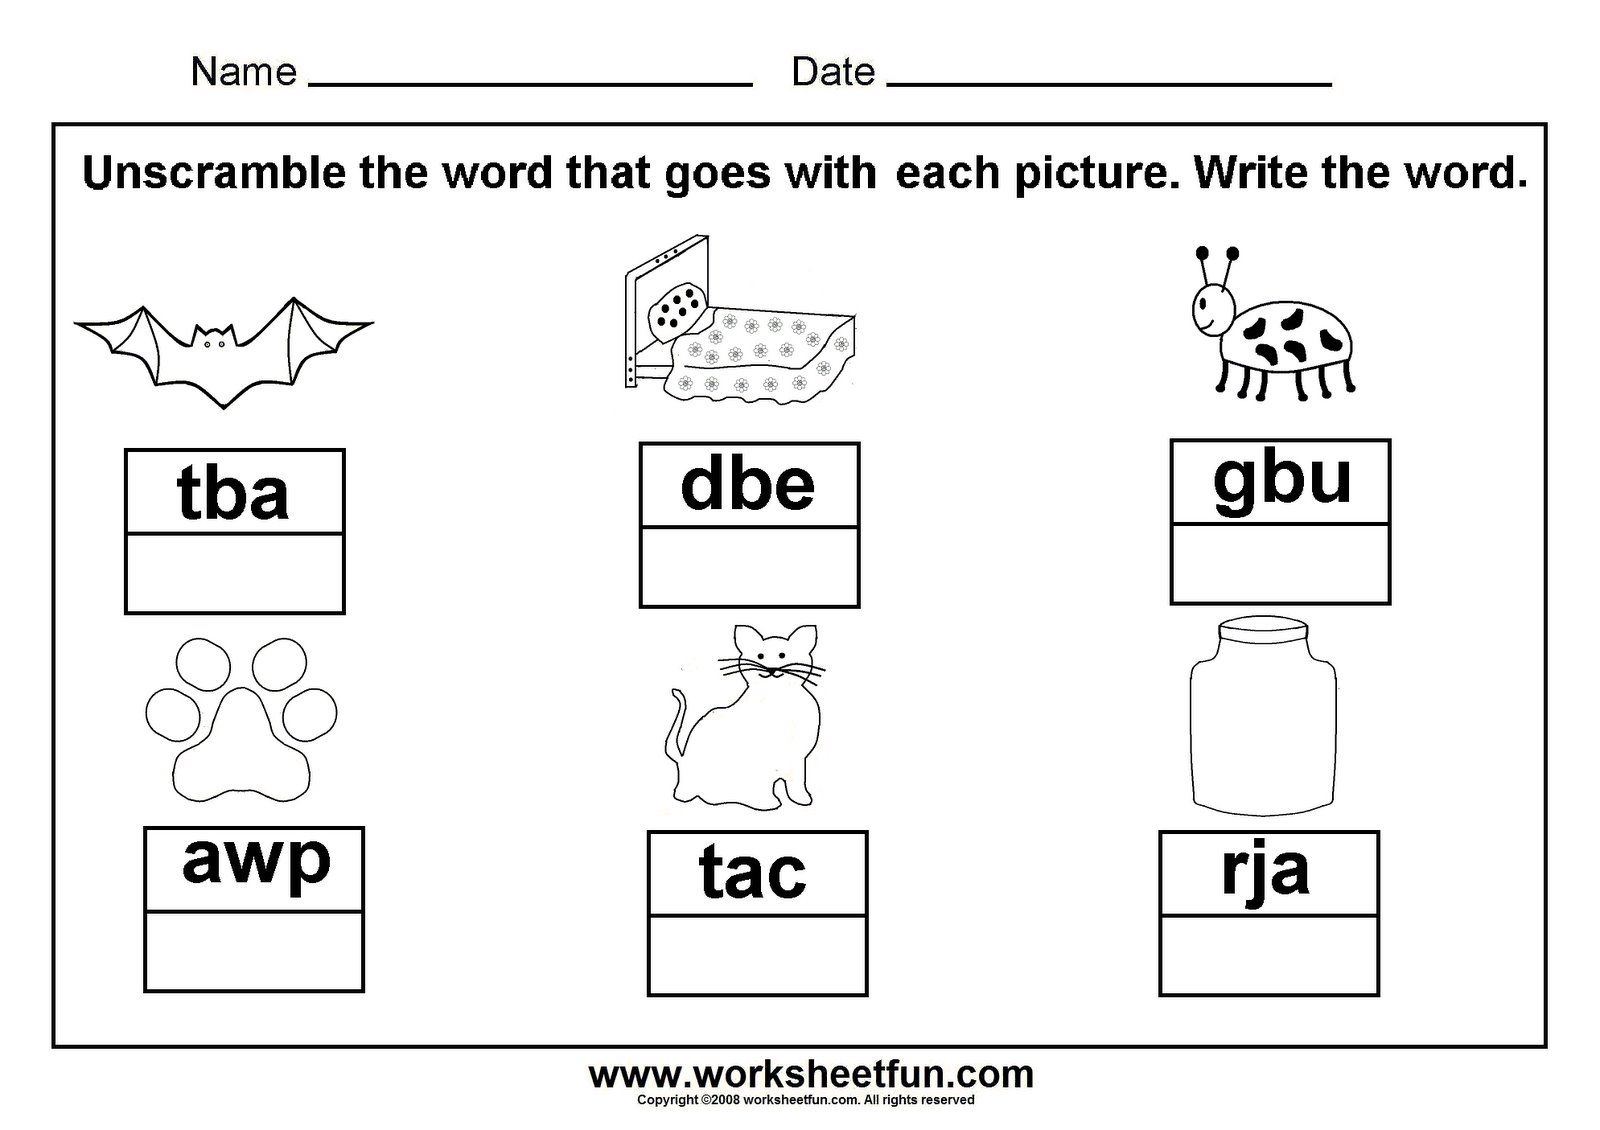 Unscramble Cvc Words; Great To Laminate And Put In A Word Work | Cvc Words Worksheets Free Printable